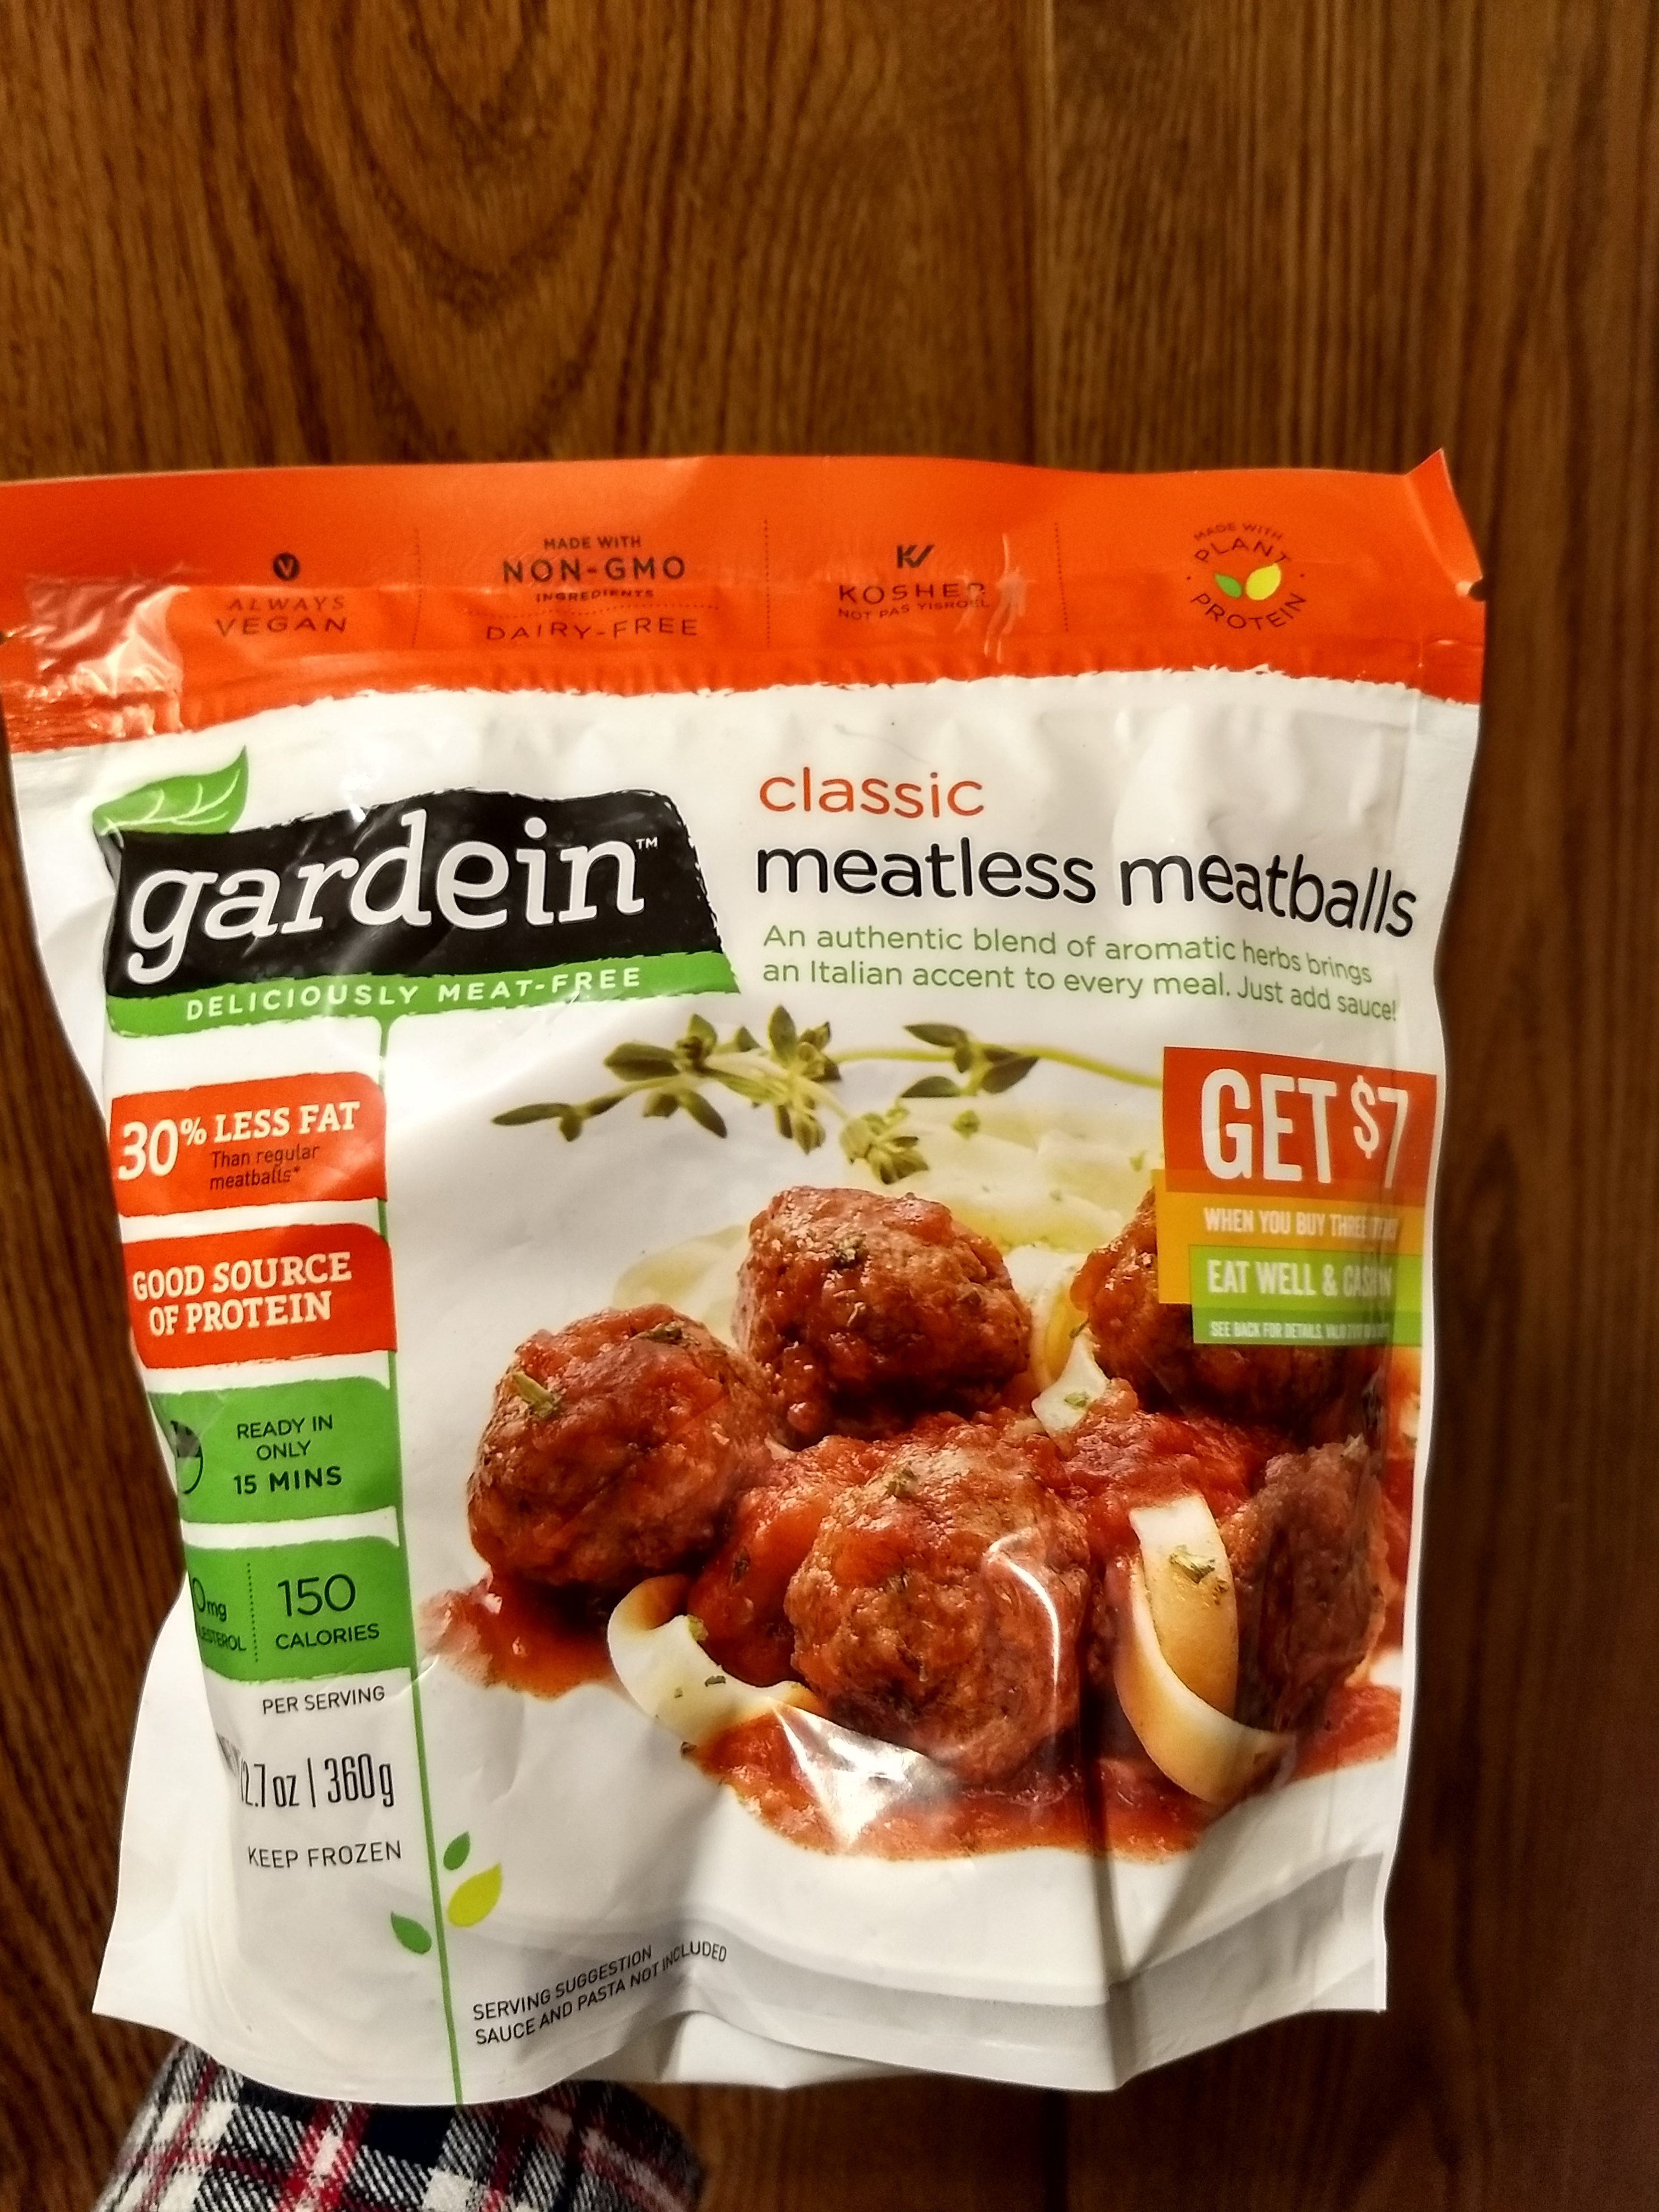 Classic meatless meatballs - Product